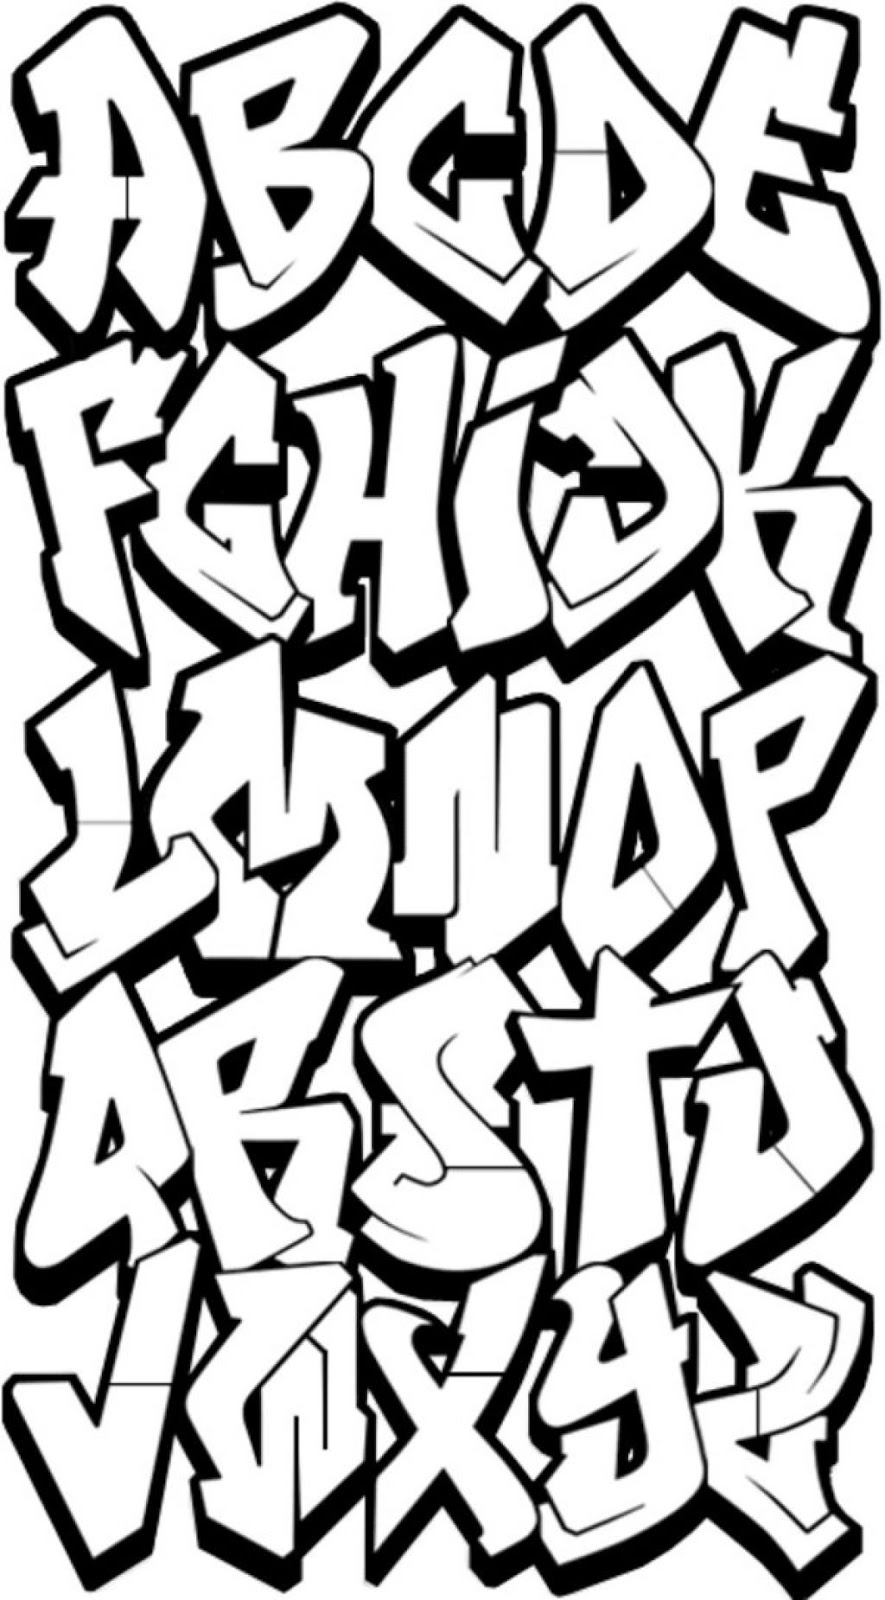 60 swanky graffiti alphabet collection